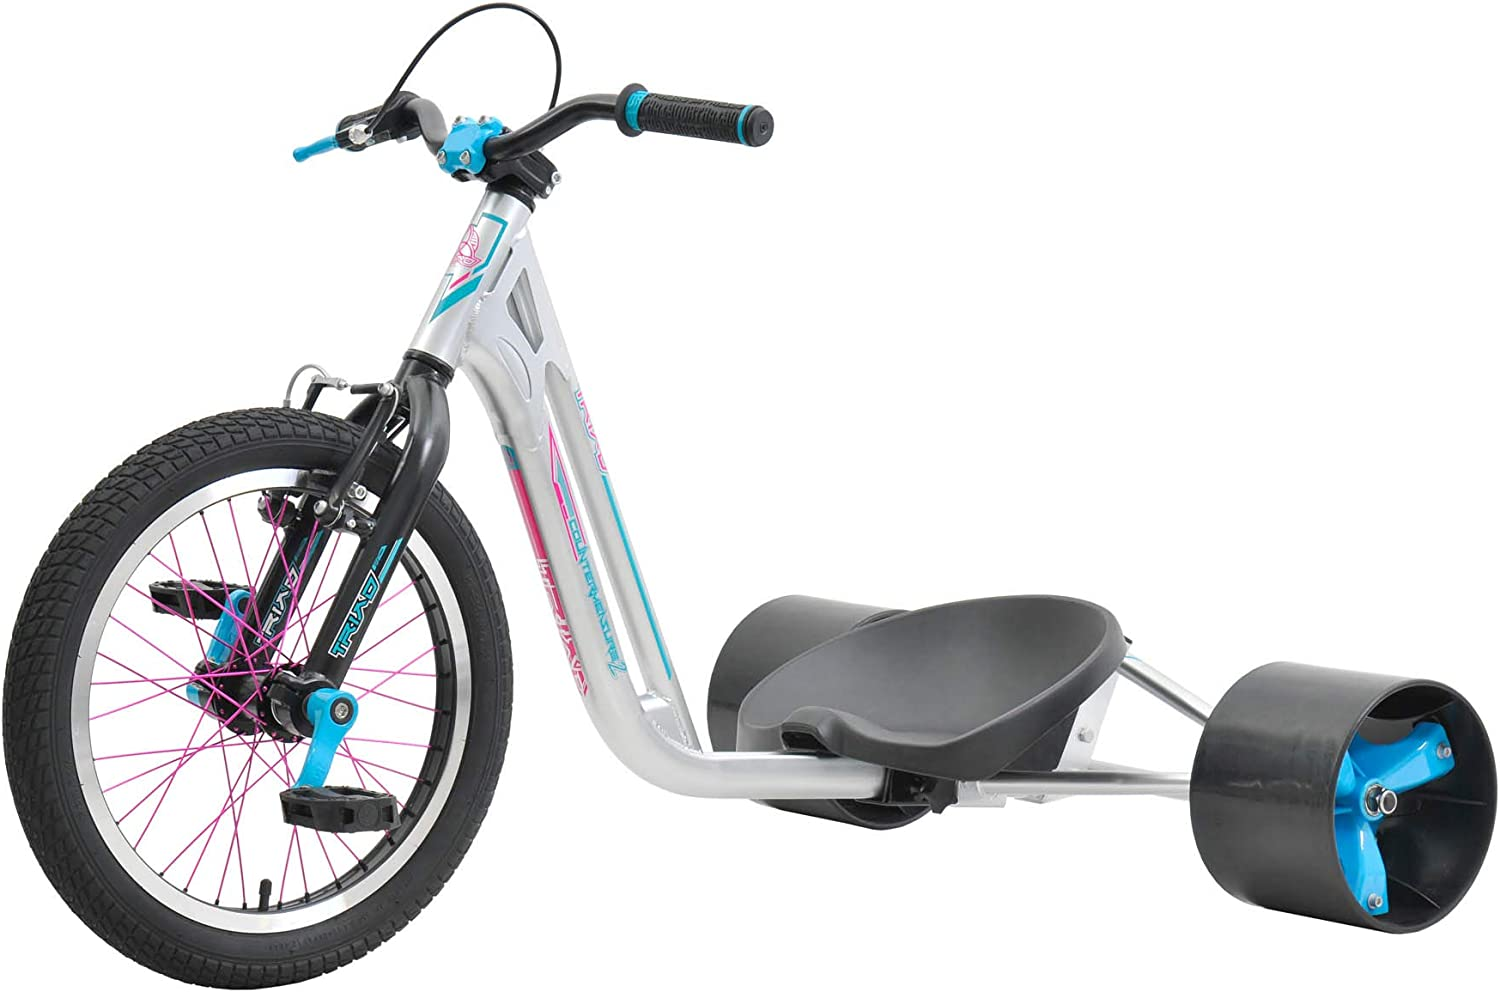 FireCloud Cycles TRIAD 18  Pro DRIFT TRIKE  Counter Measure 3 in SILVER & TEAL New